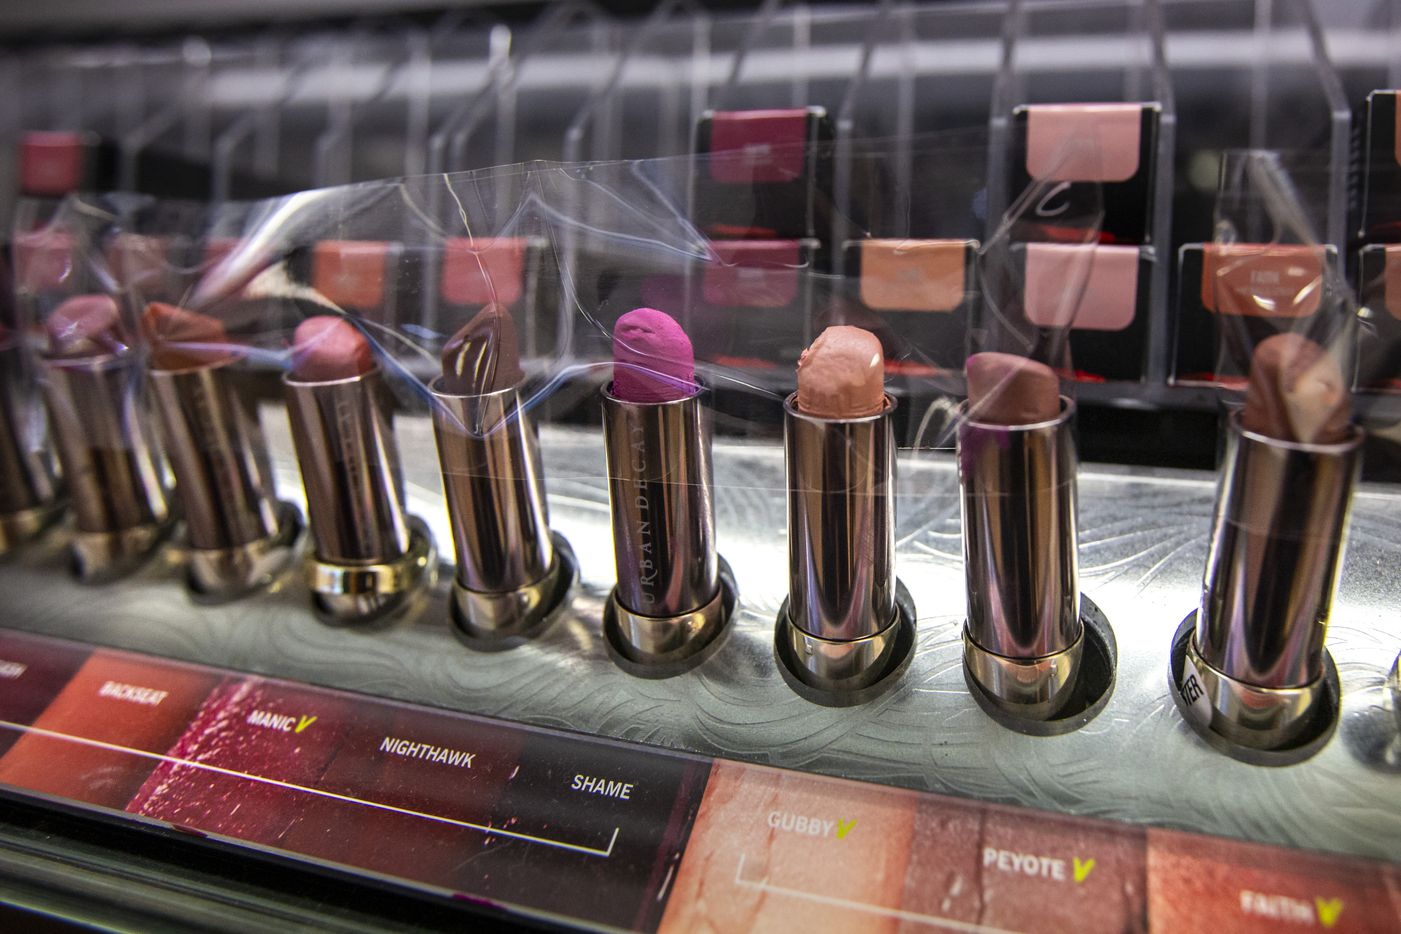 A row of taped-up sample lip products is on display only at the Ulta Beauty store. Before the virus outbreak, customers were allowed to use makeup applicators to sample lip colors.